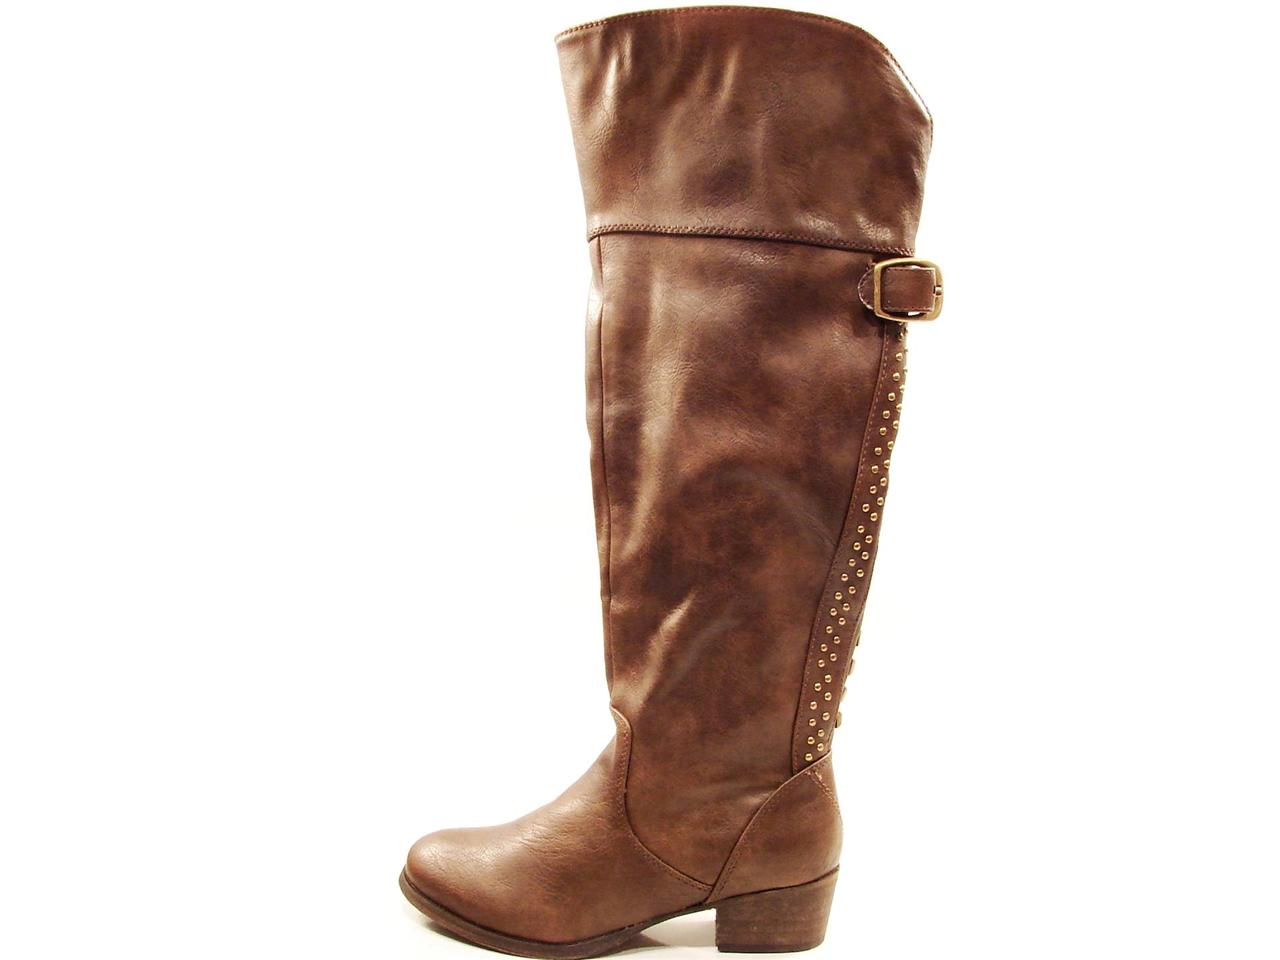 Creative Details About Women Ladies Studded Leather Tall Cowboy Boots Western